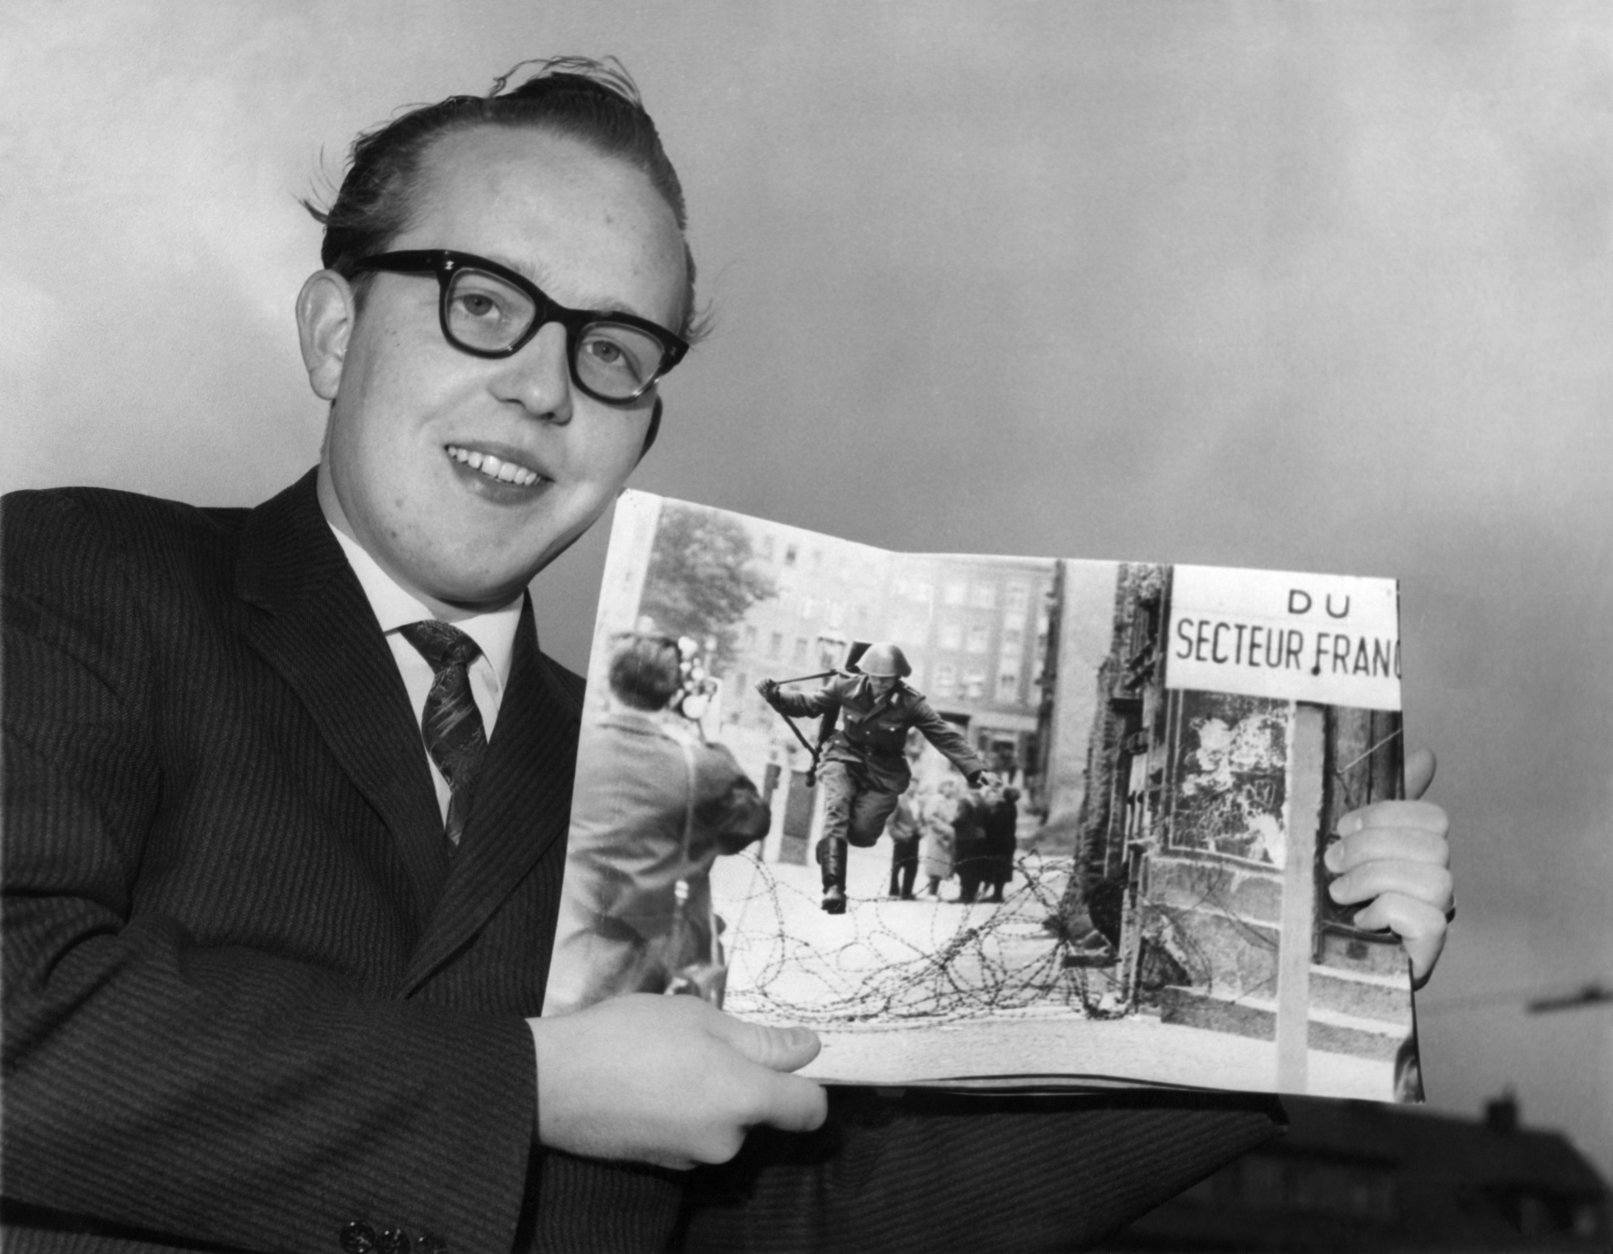 Peter Leibing, German press photographer in Hamburg, Germany, poses on April 15, 1962 with a copy of his dramatic shot of a communist East German army soldier clearing barbed wire at the Berlin sector border. Leibing made this picture when assigned to Berlin during dramatic August 1961 days, when the Reds set up the wall. The picture won him several prizes among them first prize of America's NPPA (National Press Photographers Association) as was announced on April 14, 1962. (AP Photo/Helmuth Lohmann)